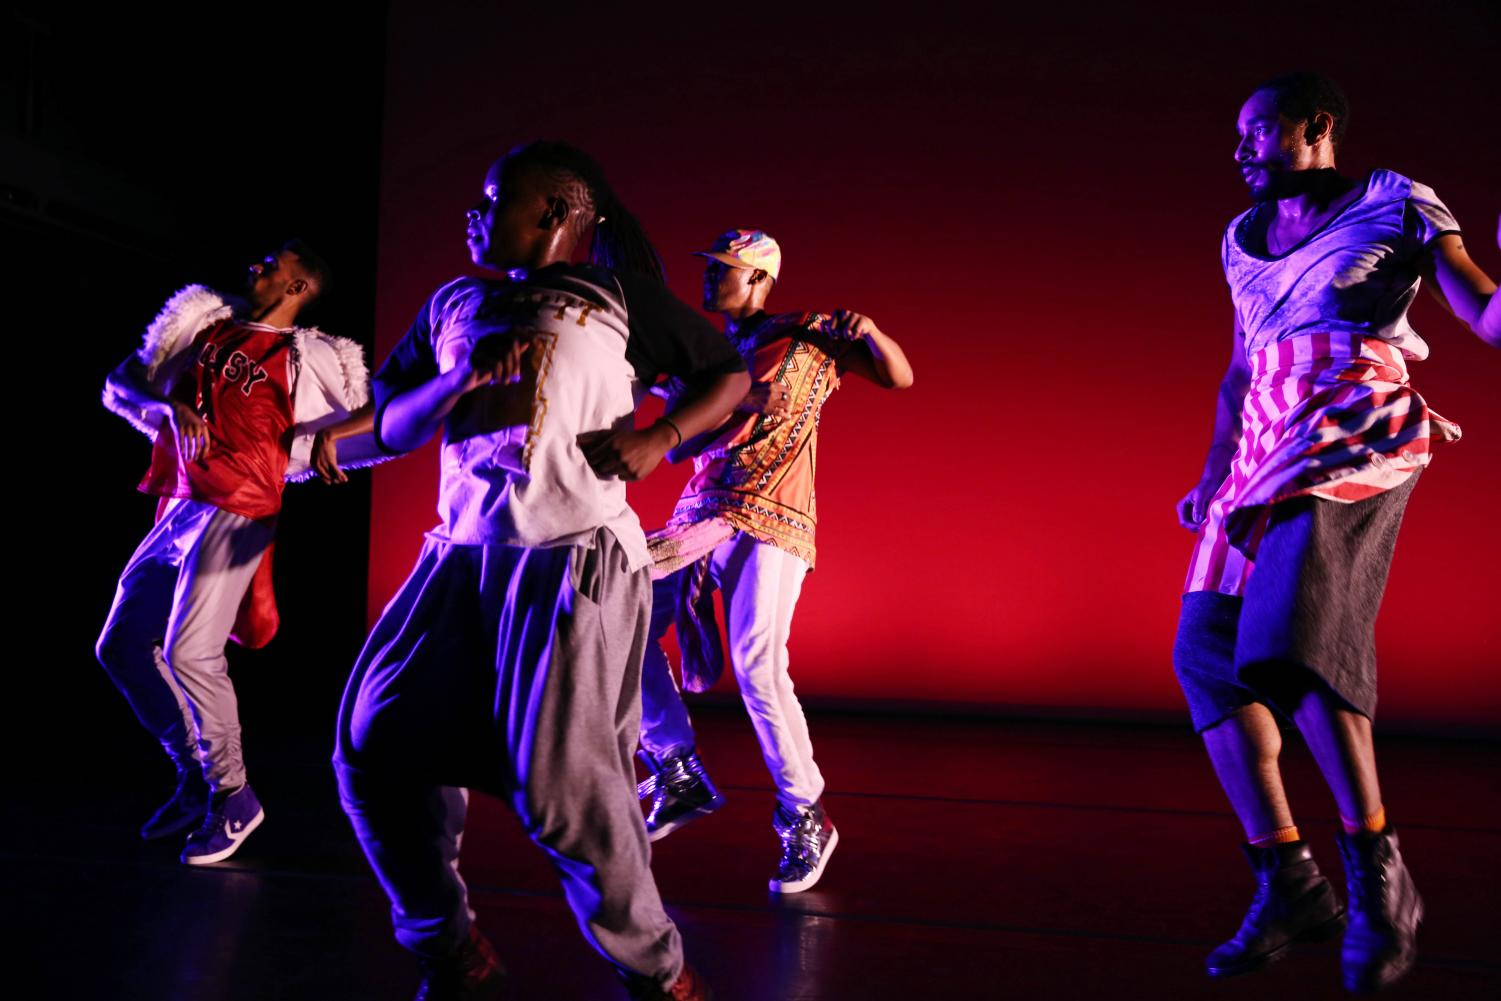 """Dancers perform """"Virago-Man Dem."""" The production was created by University professor Cynthia Oliver to celebrate black masculinity. Two of the dancers, Duane Cyrus and Niall Jones, are University alumni whom Oliver recruited for the show."""